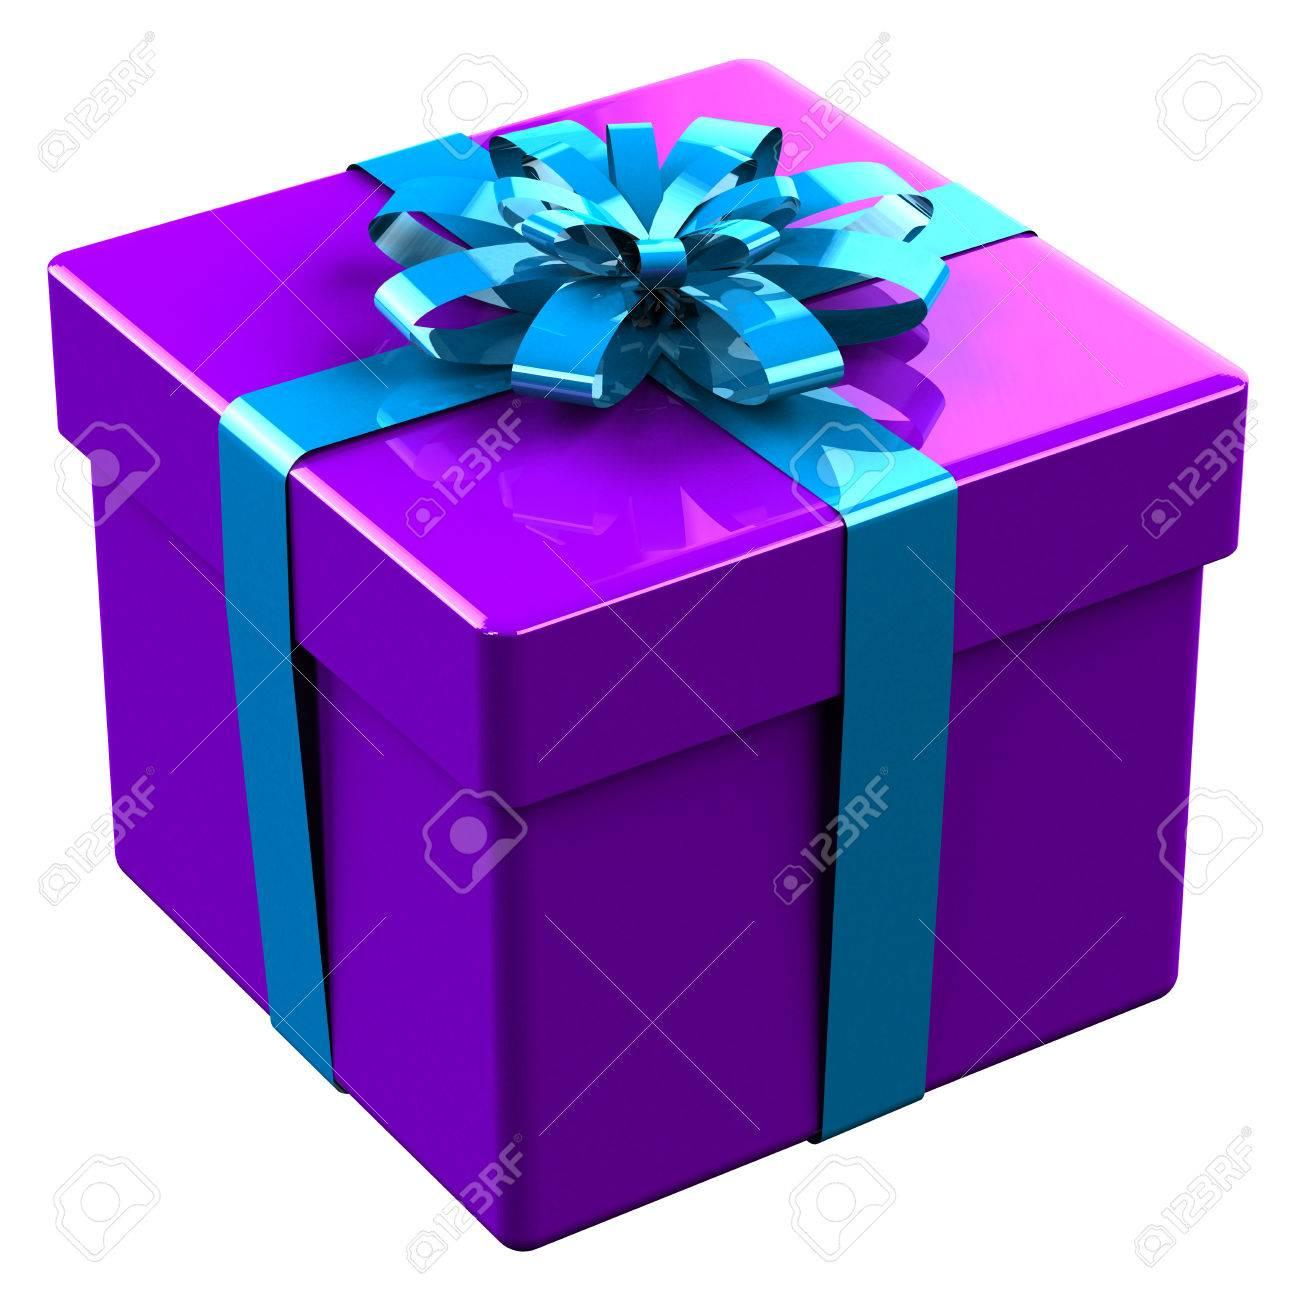 Purple gift box tied blue with a bow isolated on white background. 3D render.  sc 1 st  123RF.com & Purple Gift Box Tied Blue With A Bow Isolated On White Background ...